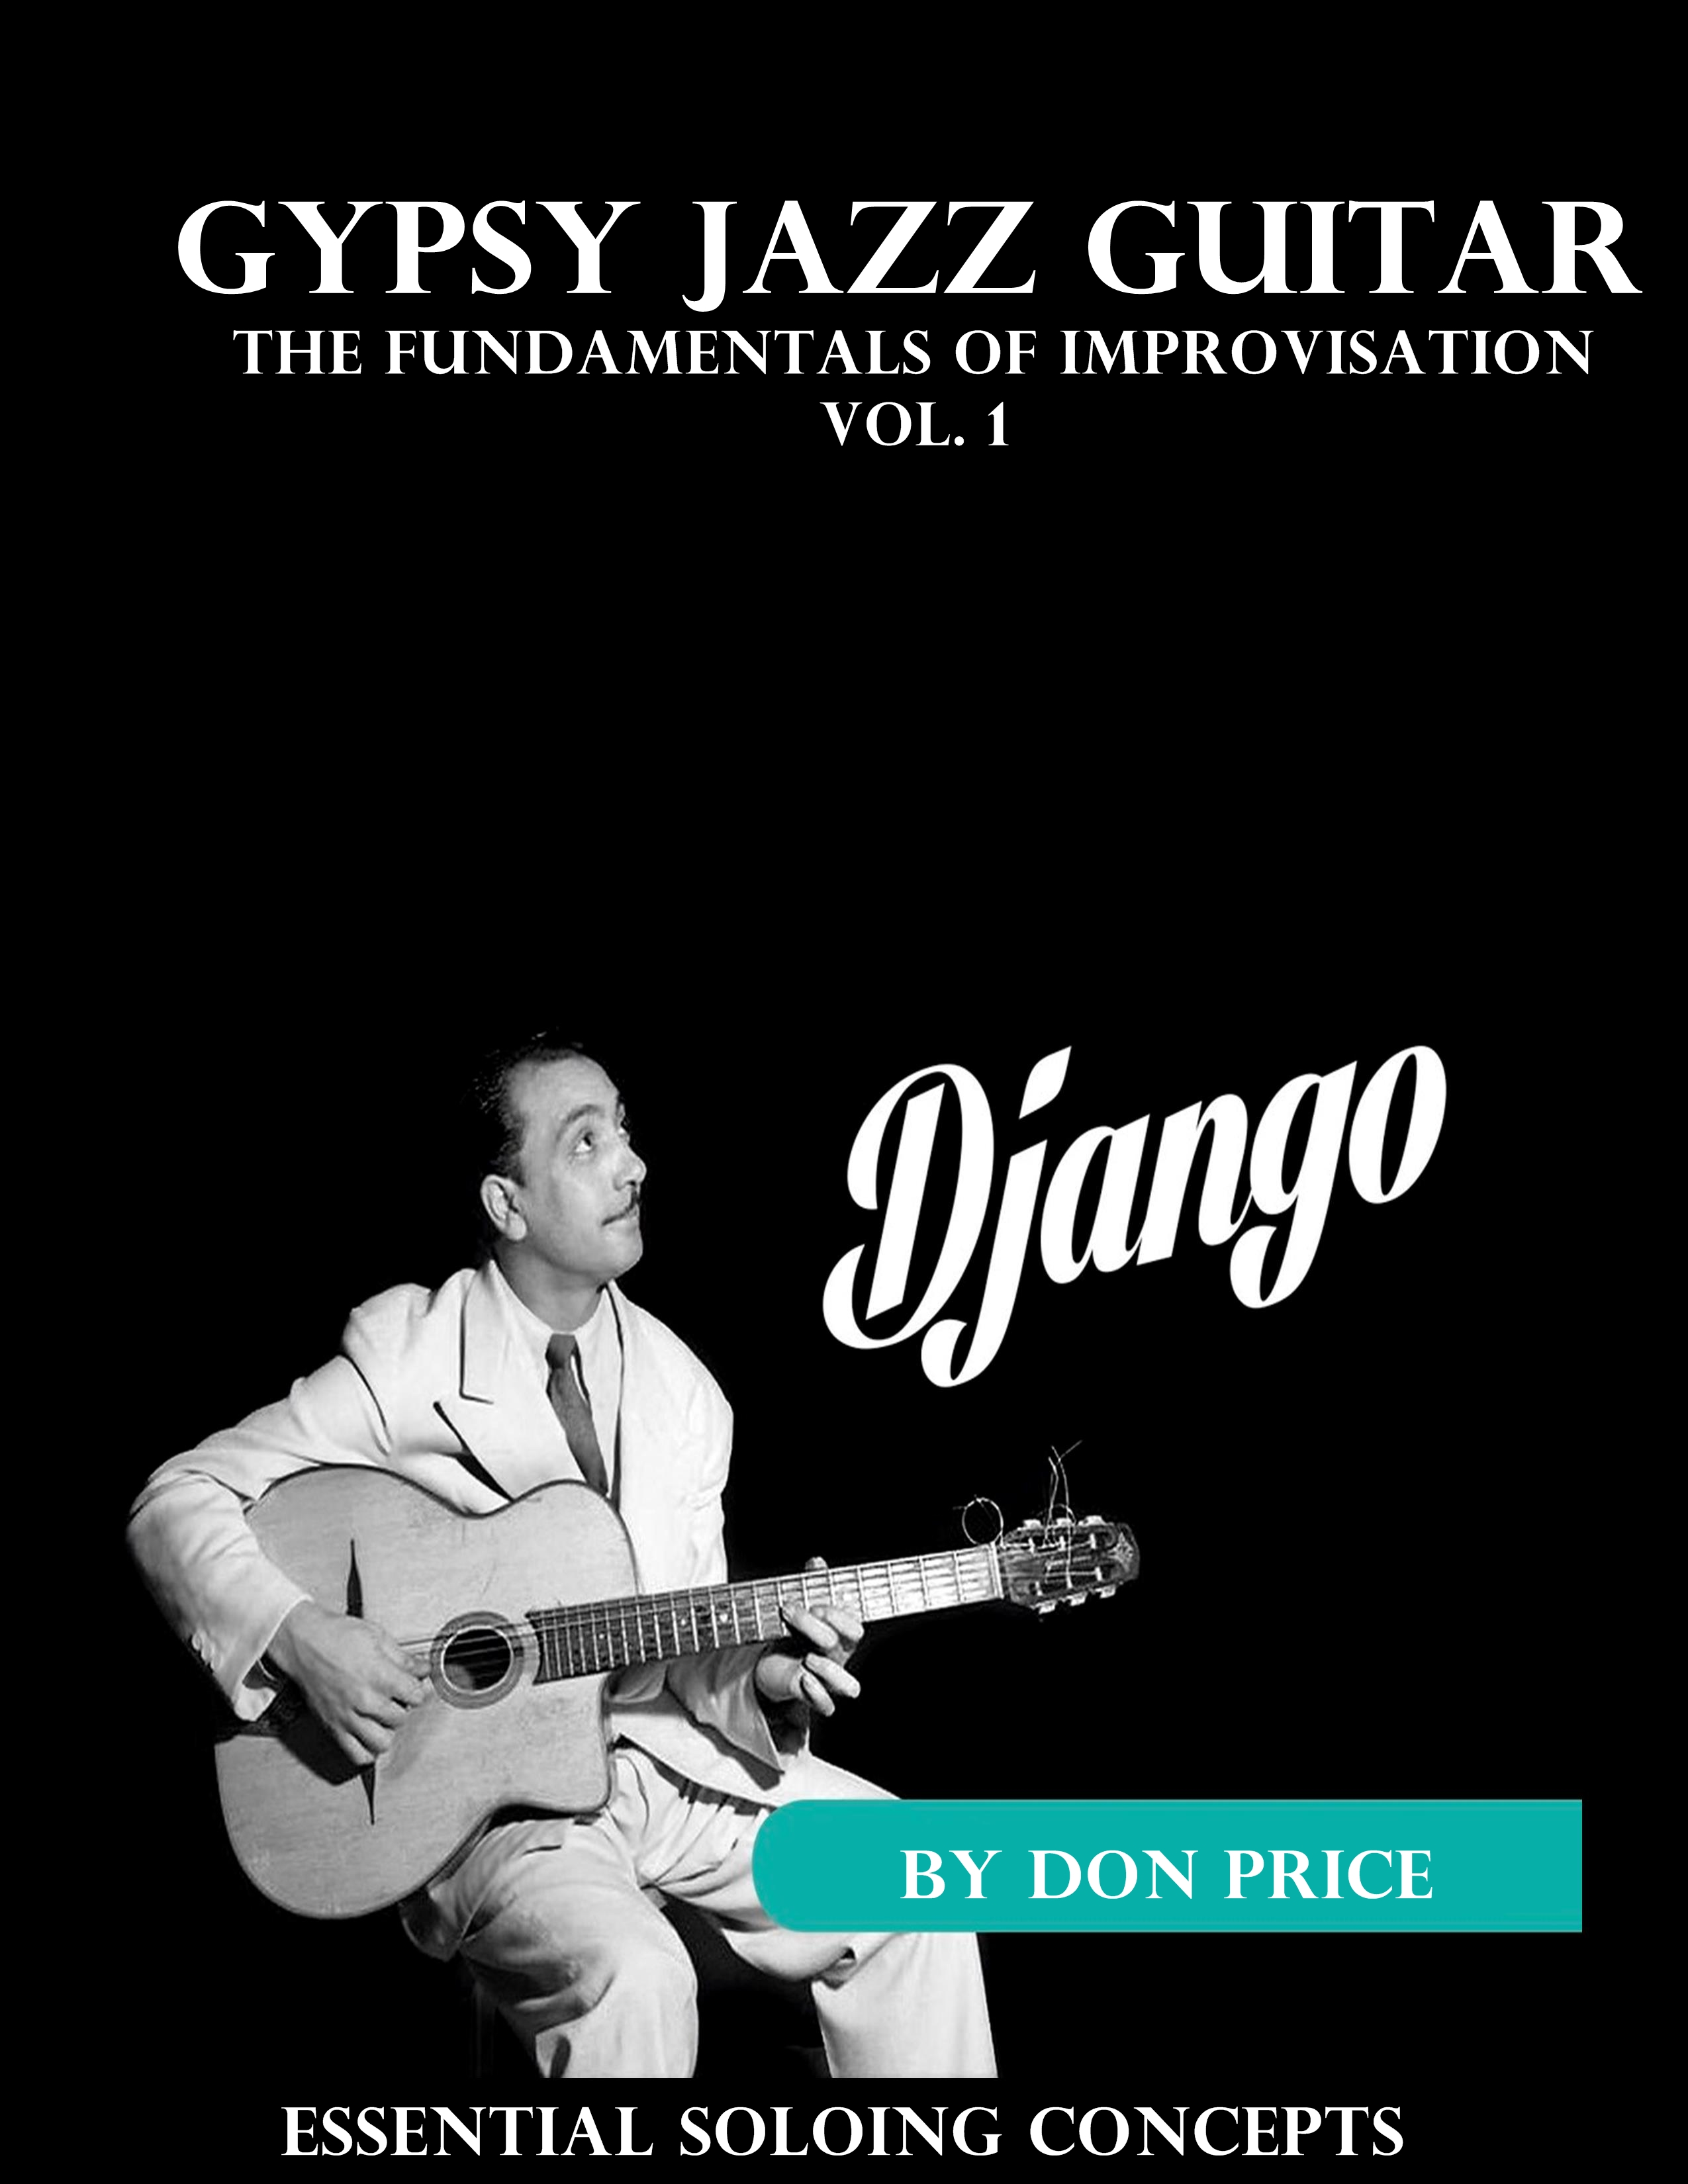 Don Price: Essential Soloing Concepts - The Fundamentals of Improvisation Vol.1